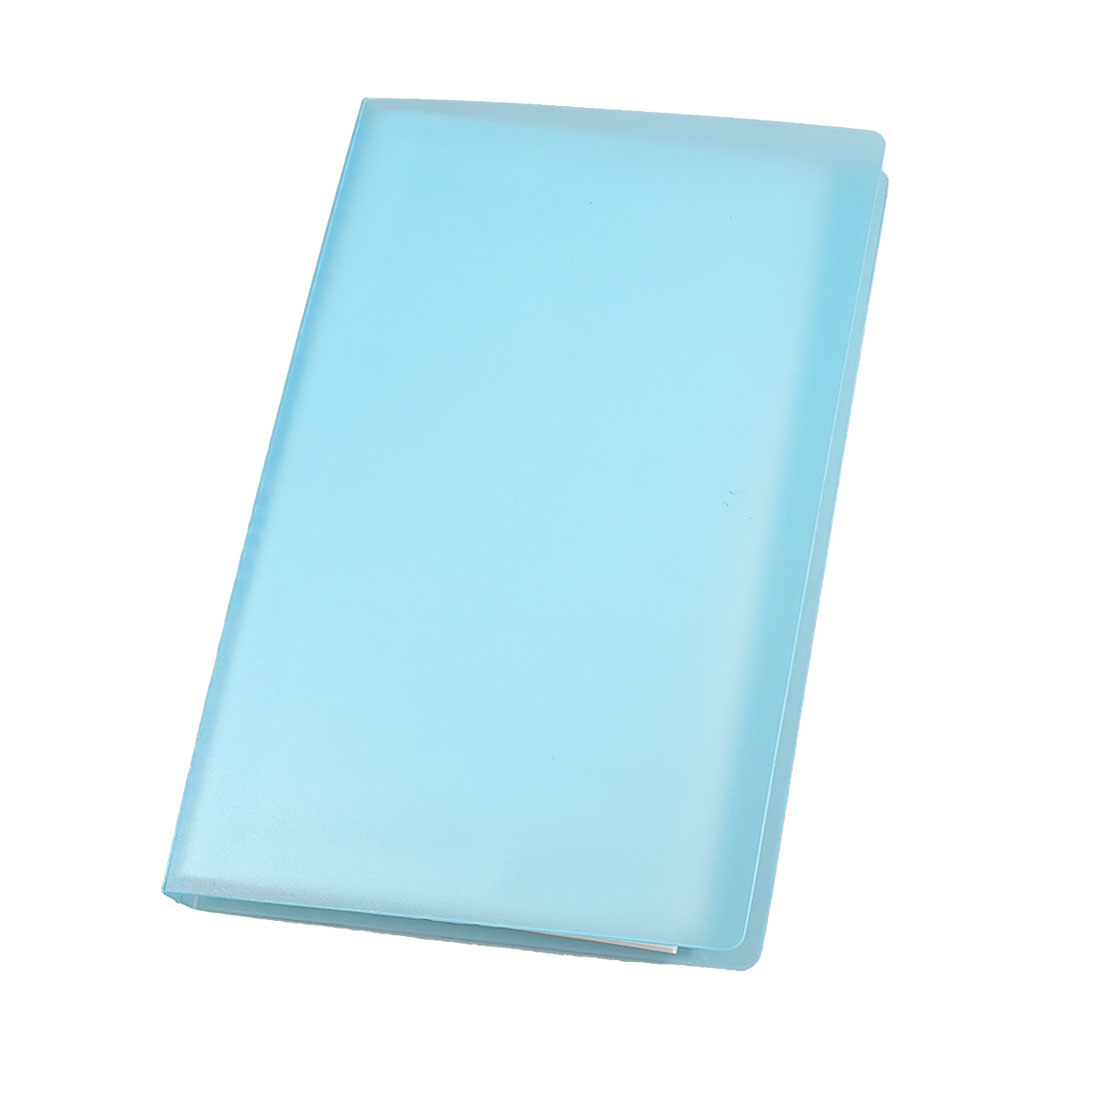 Notebook Shaped 120 Pcs Capacity Business Card Holder Light Blue